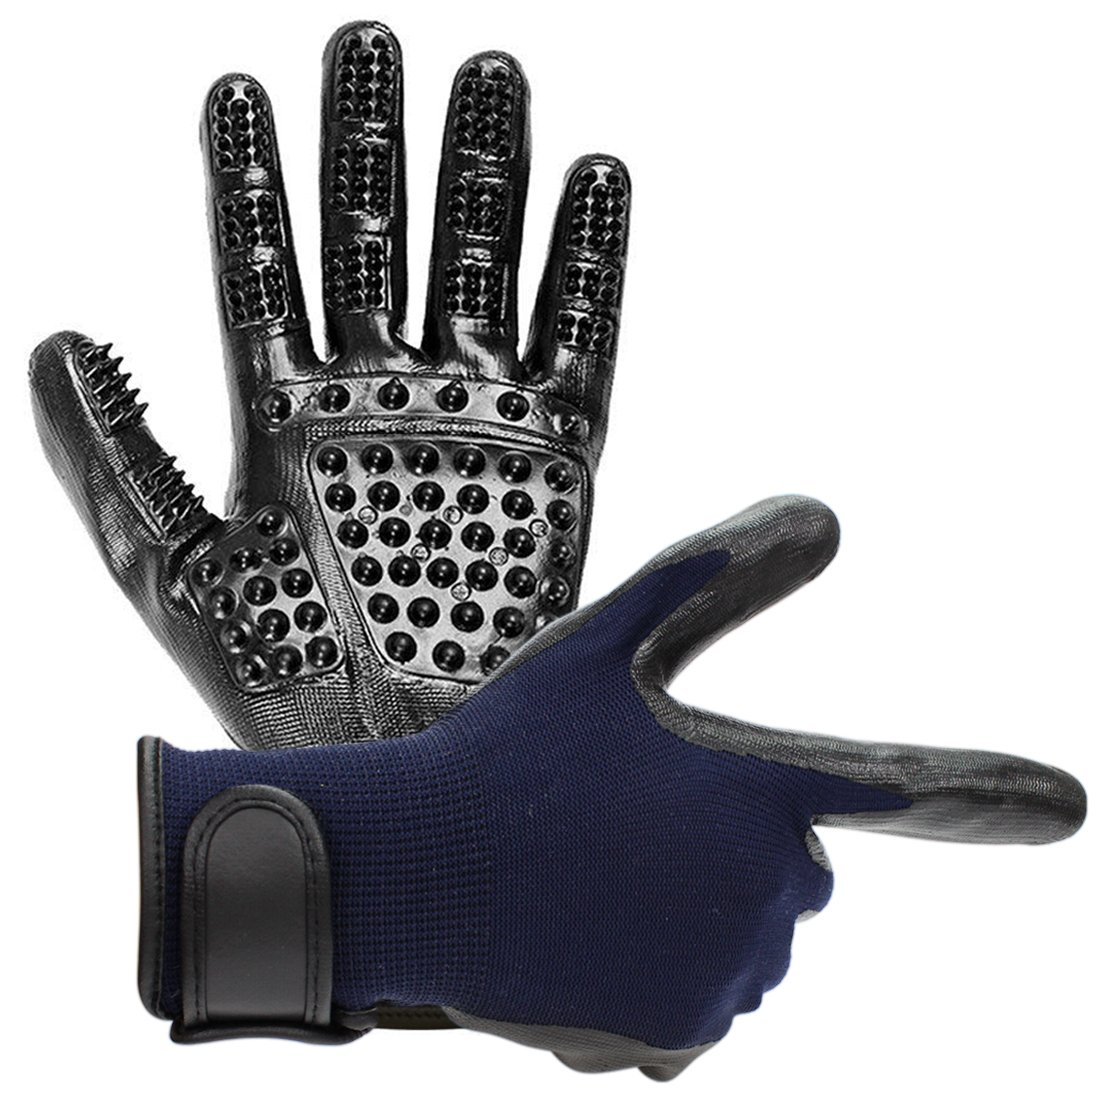 Vission Pet Grooming Glove Hair Removal Mitt - Gentle Deshedding Brush Glove - Perfect for Dogs, Cats & Horses with Long or Short Fur - Enhanced Five Finger Design (Blue)